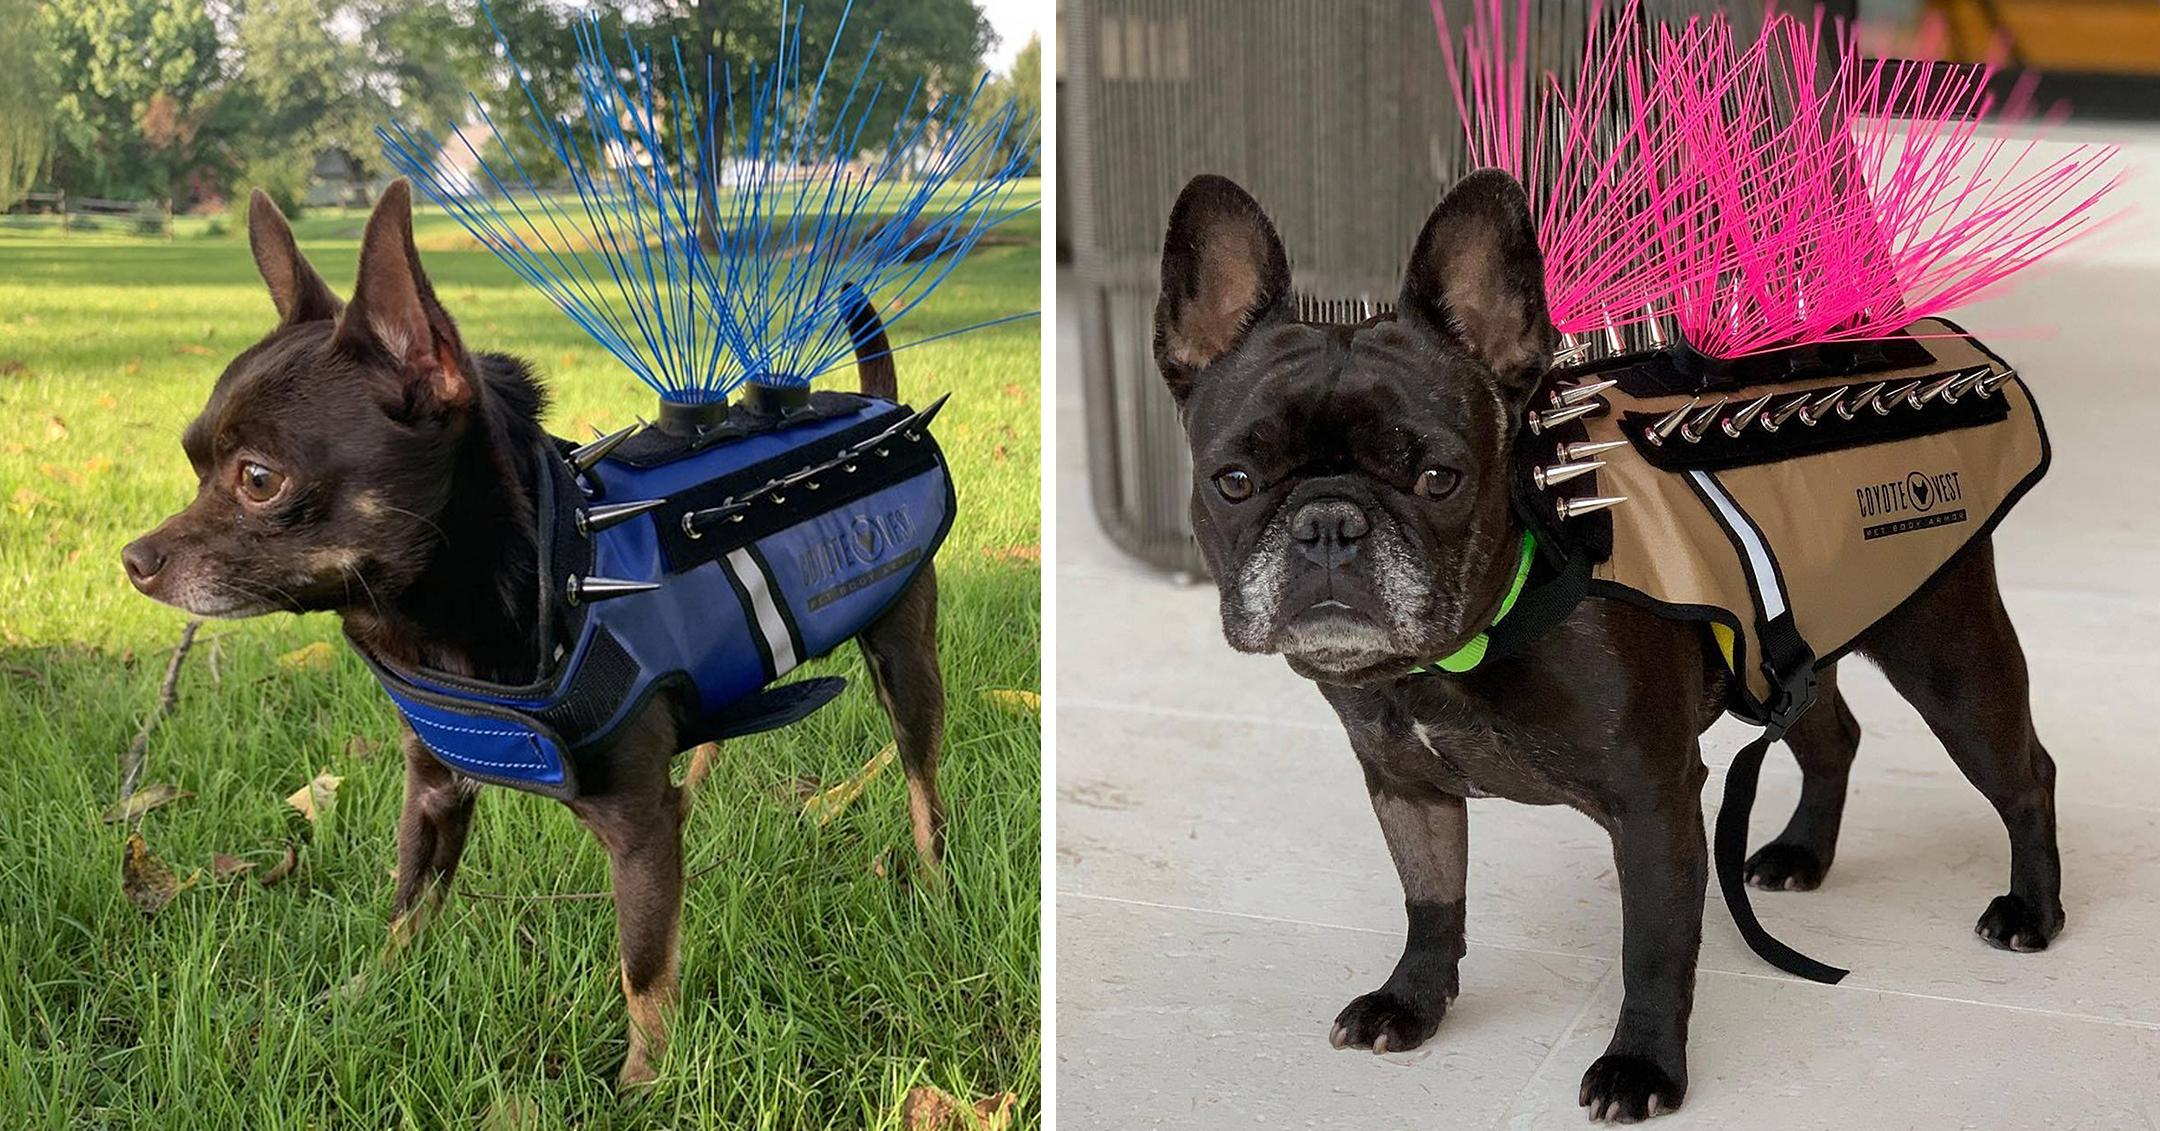 dogs wear coyotevest as protection from hawks